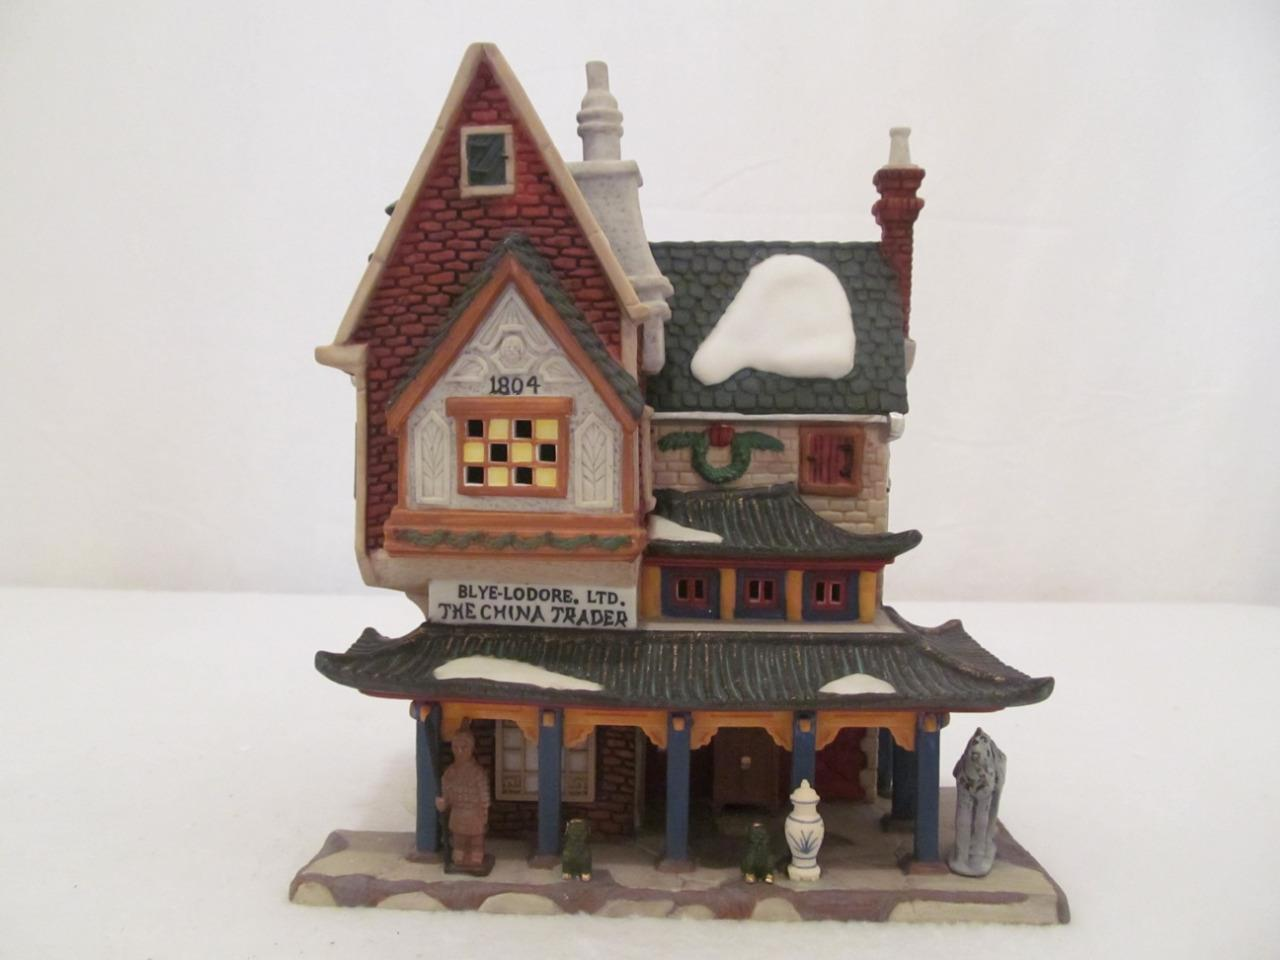 Primary image for Dickens Village Dept 56 - China Trader - Original Box